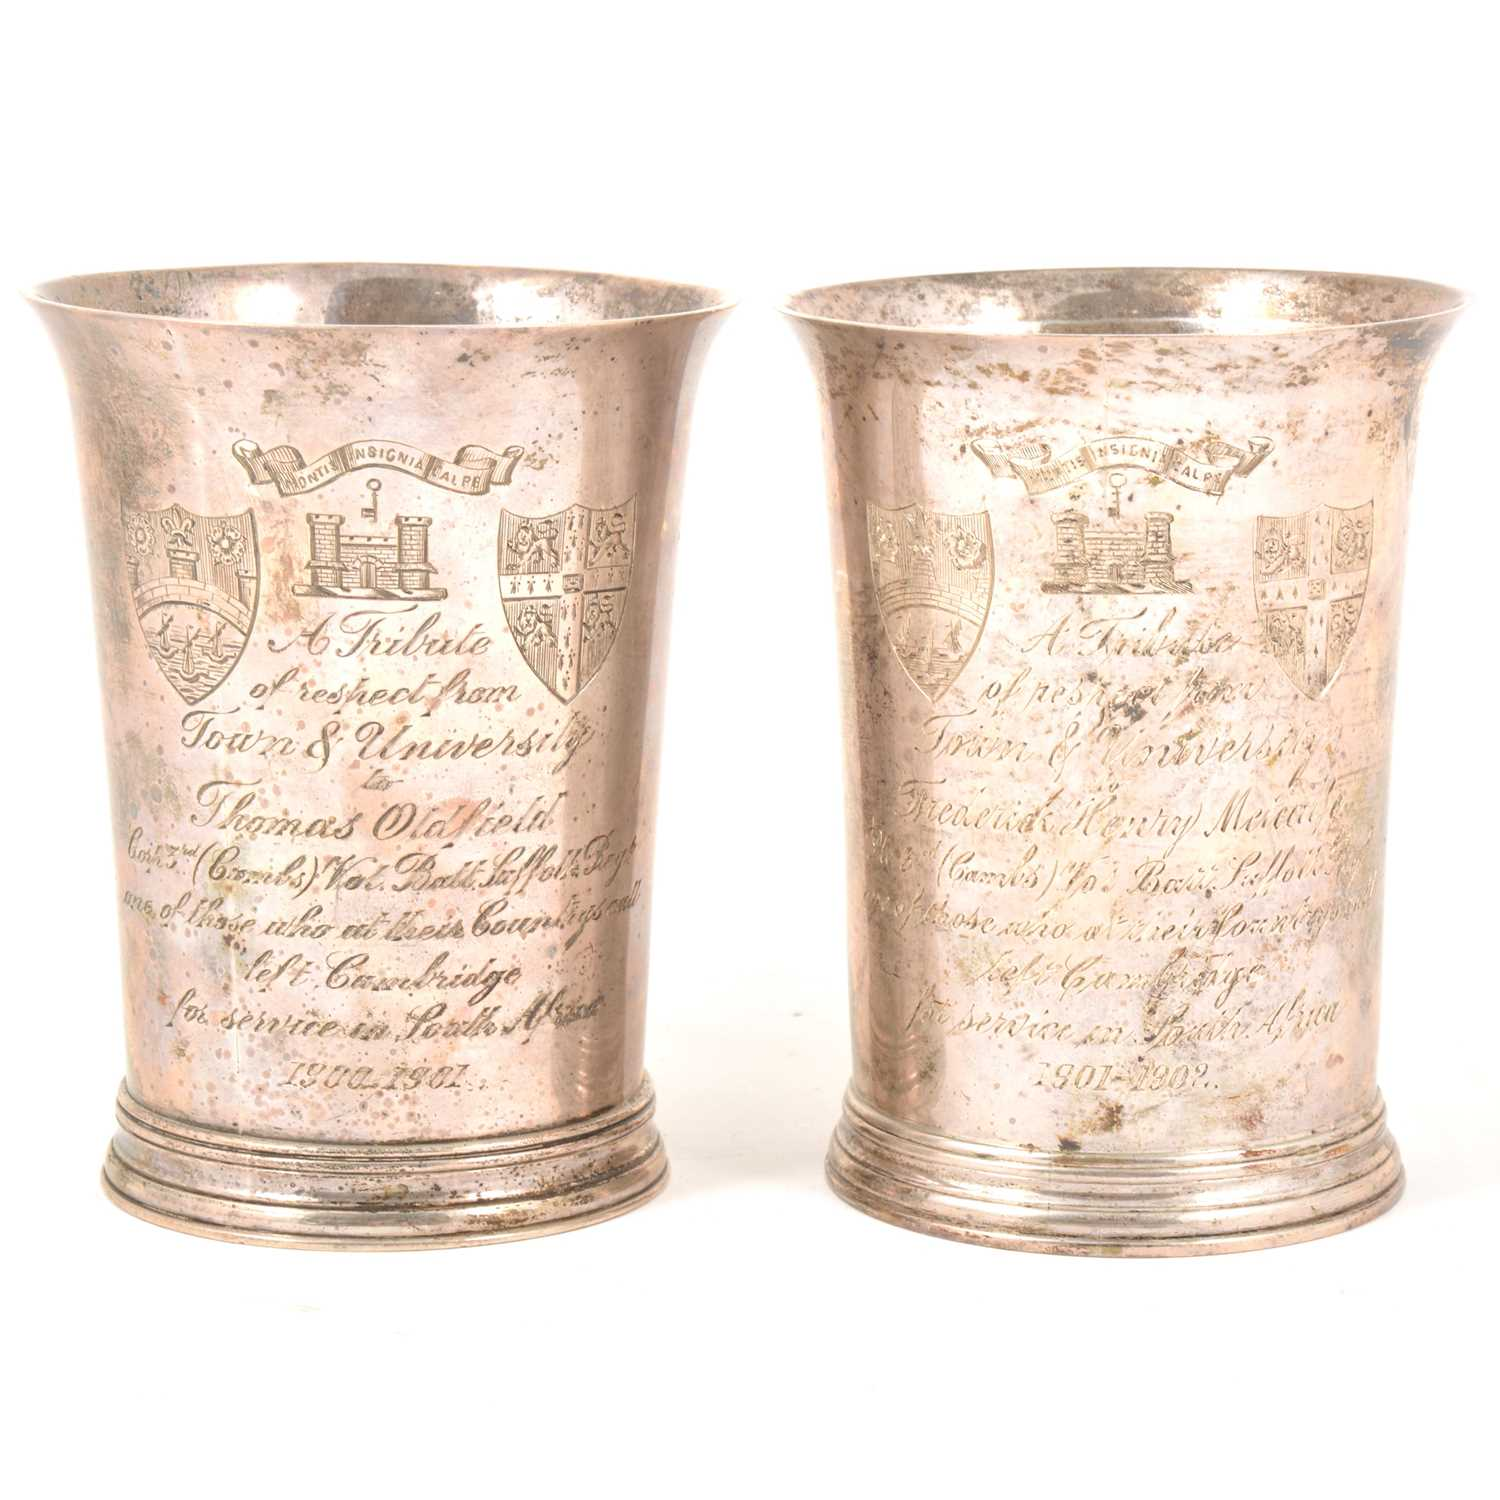 140 - Boer War interest; two silver presentation beakers, David Munsey, London 1900 and 1902